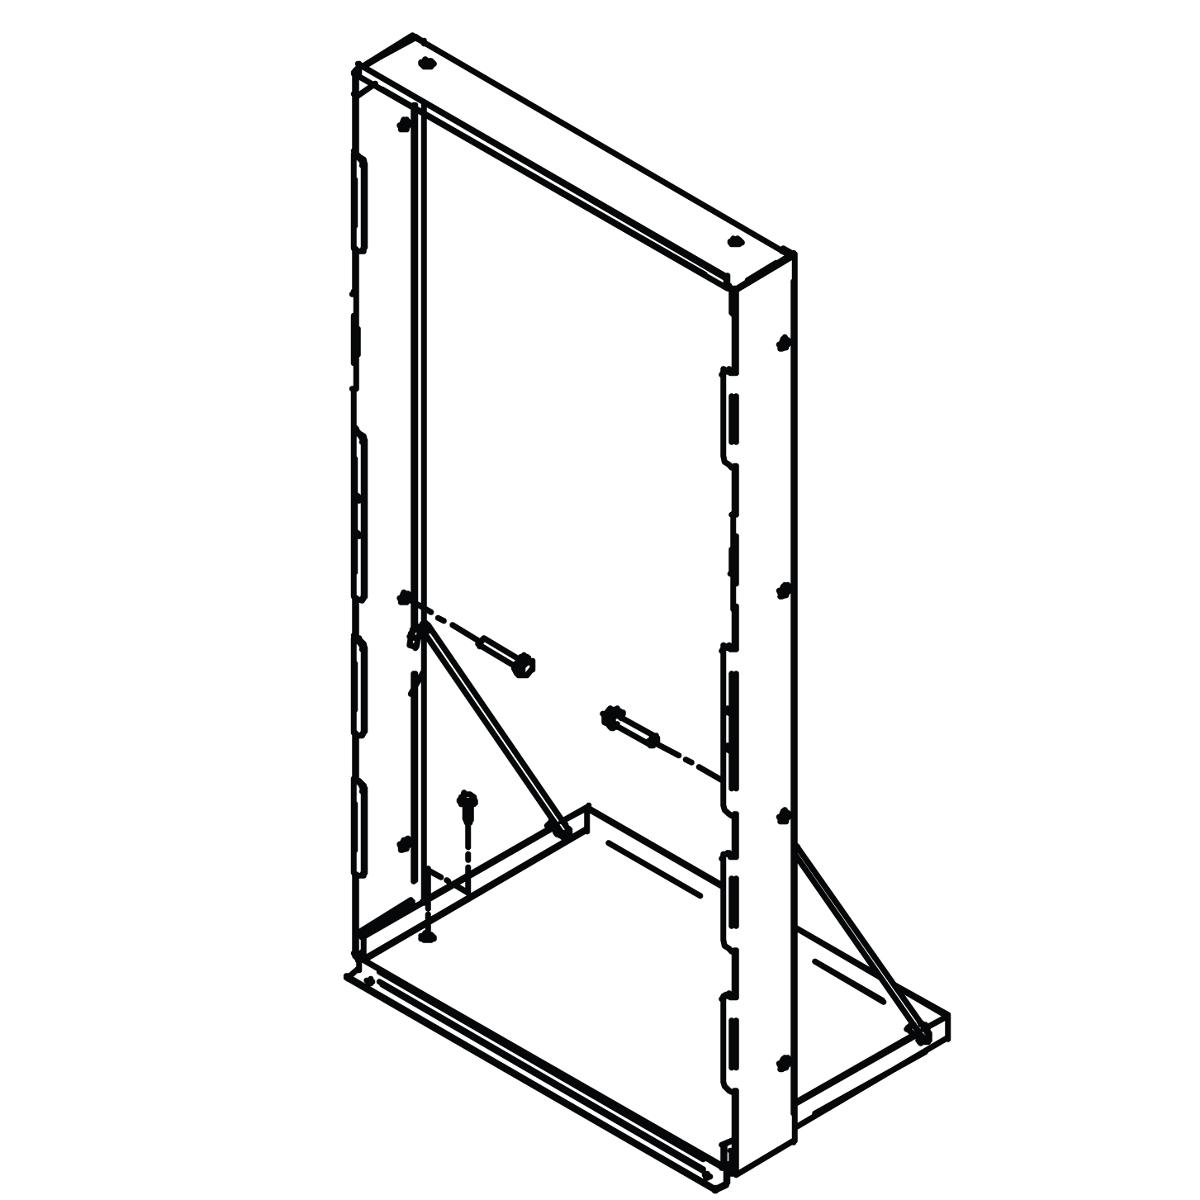 Elkay  Accessory - Mounting Frame For In-wall Ezh2o Models 1697205